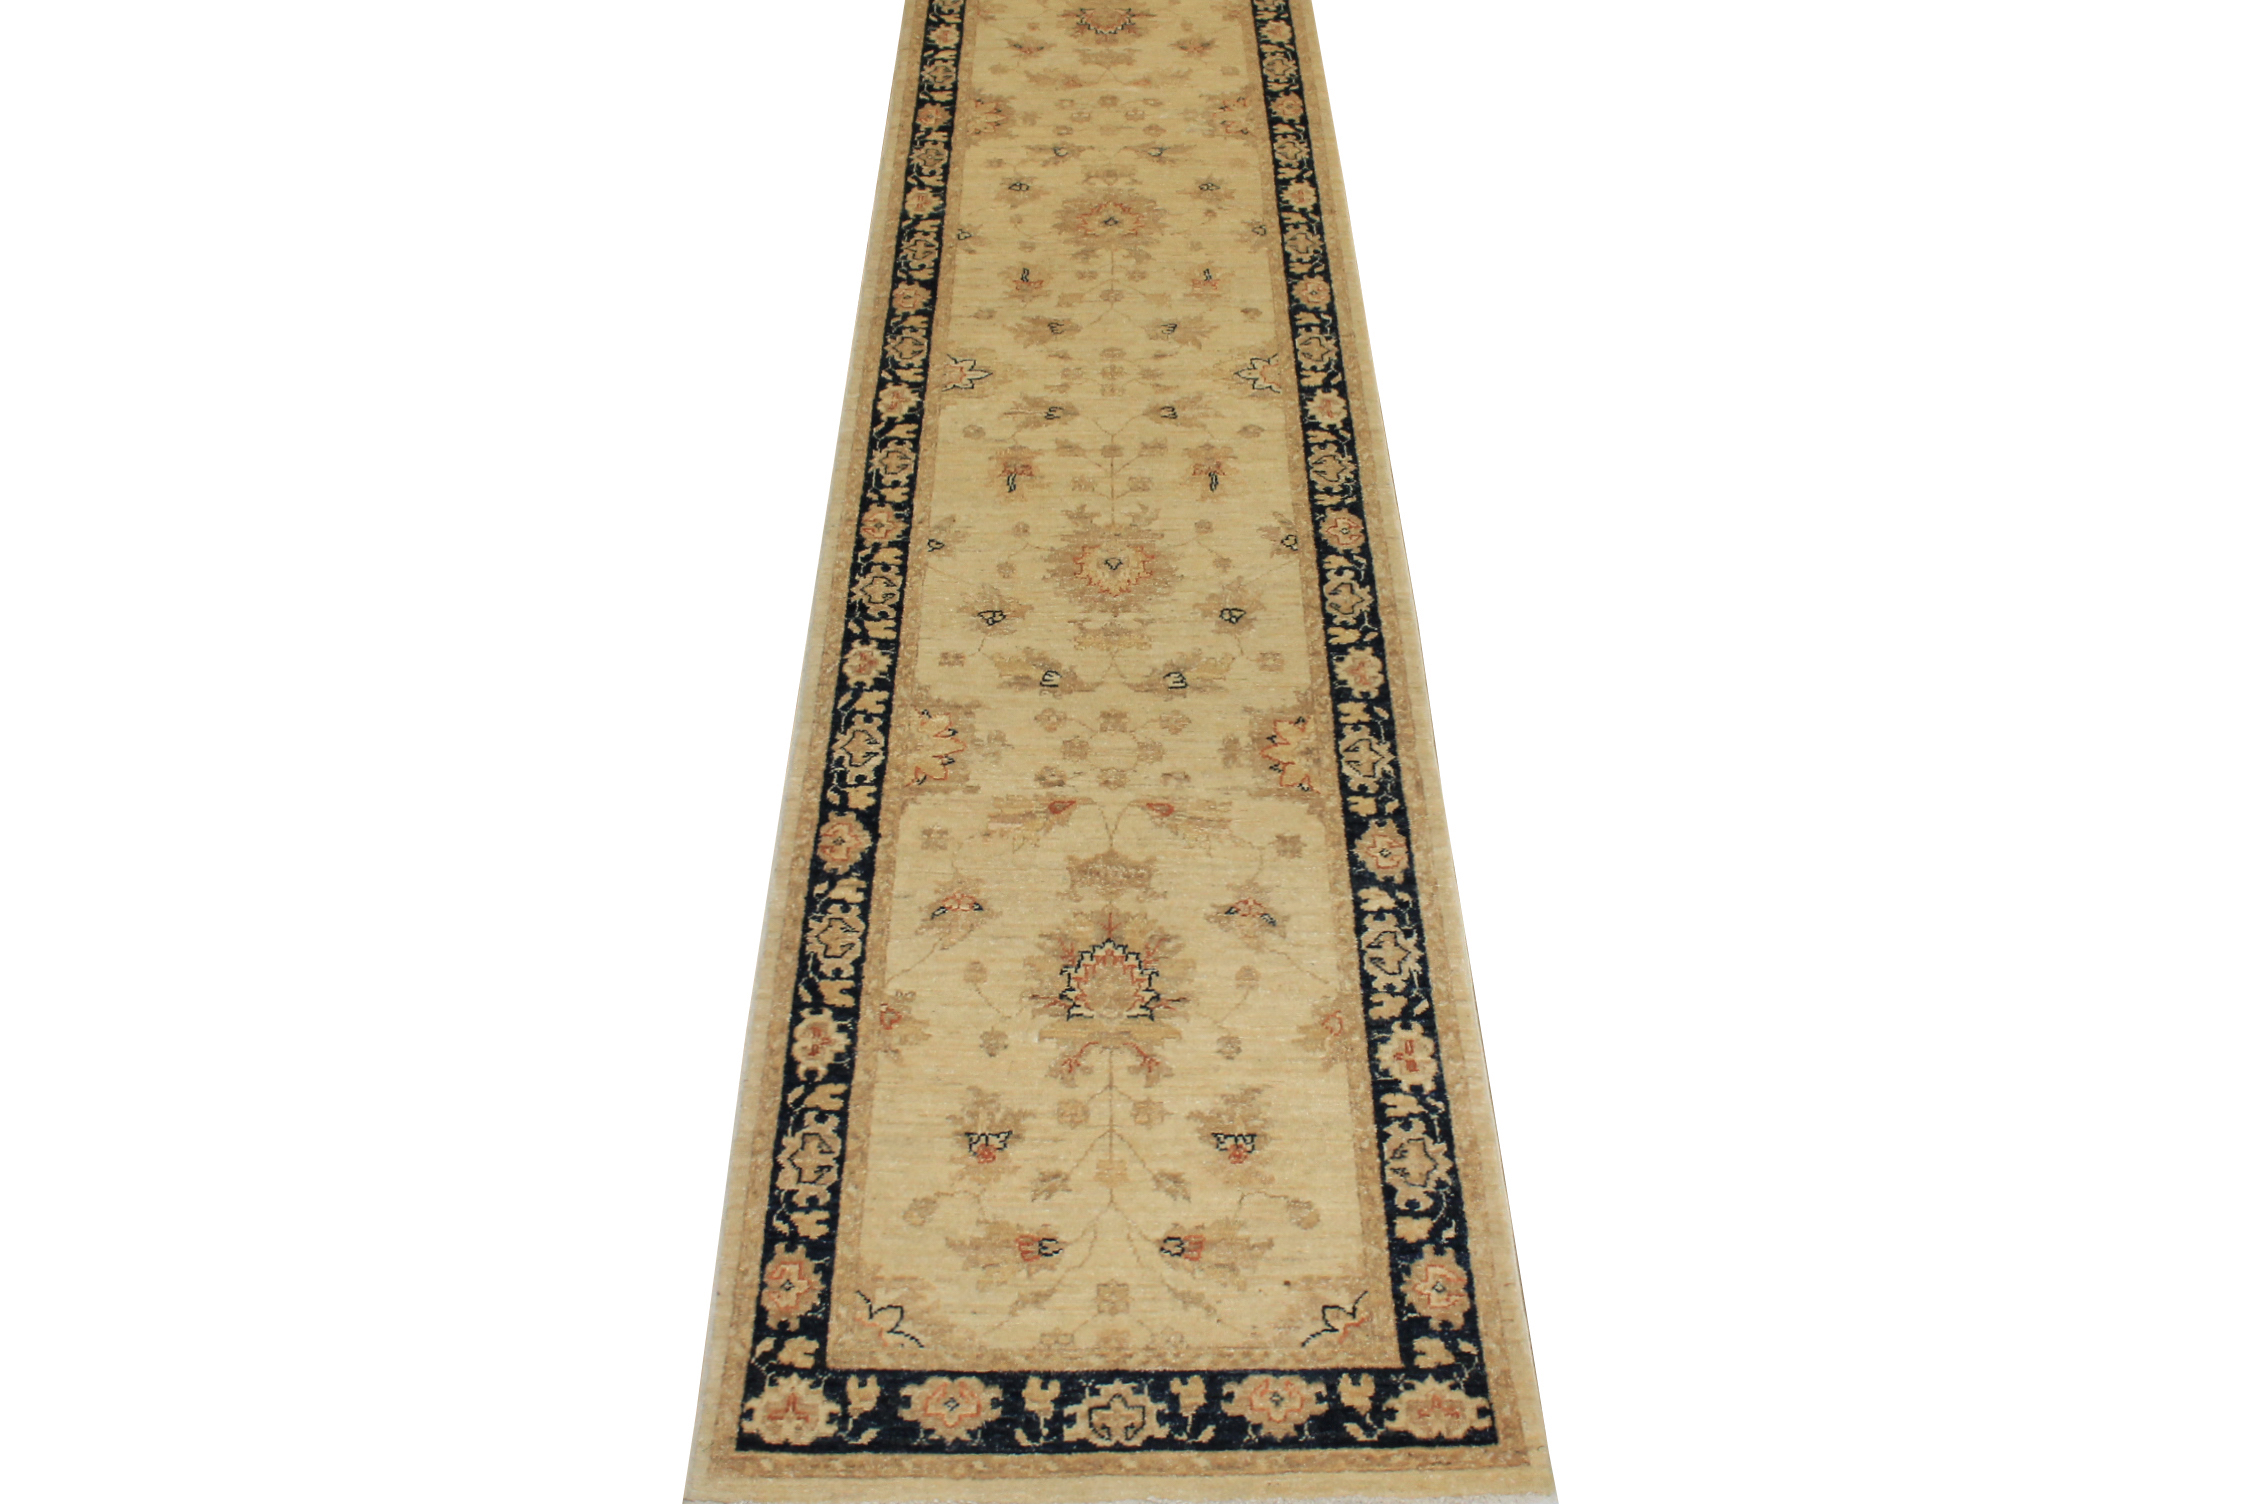 12 ft. Runner Peshawar Hand Knotted Wool Area Rug - MR10630